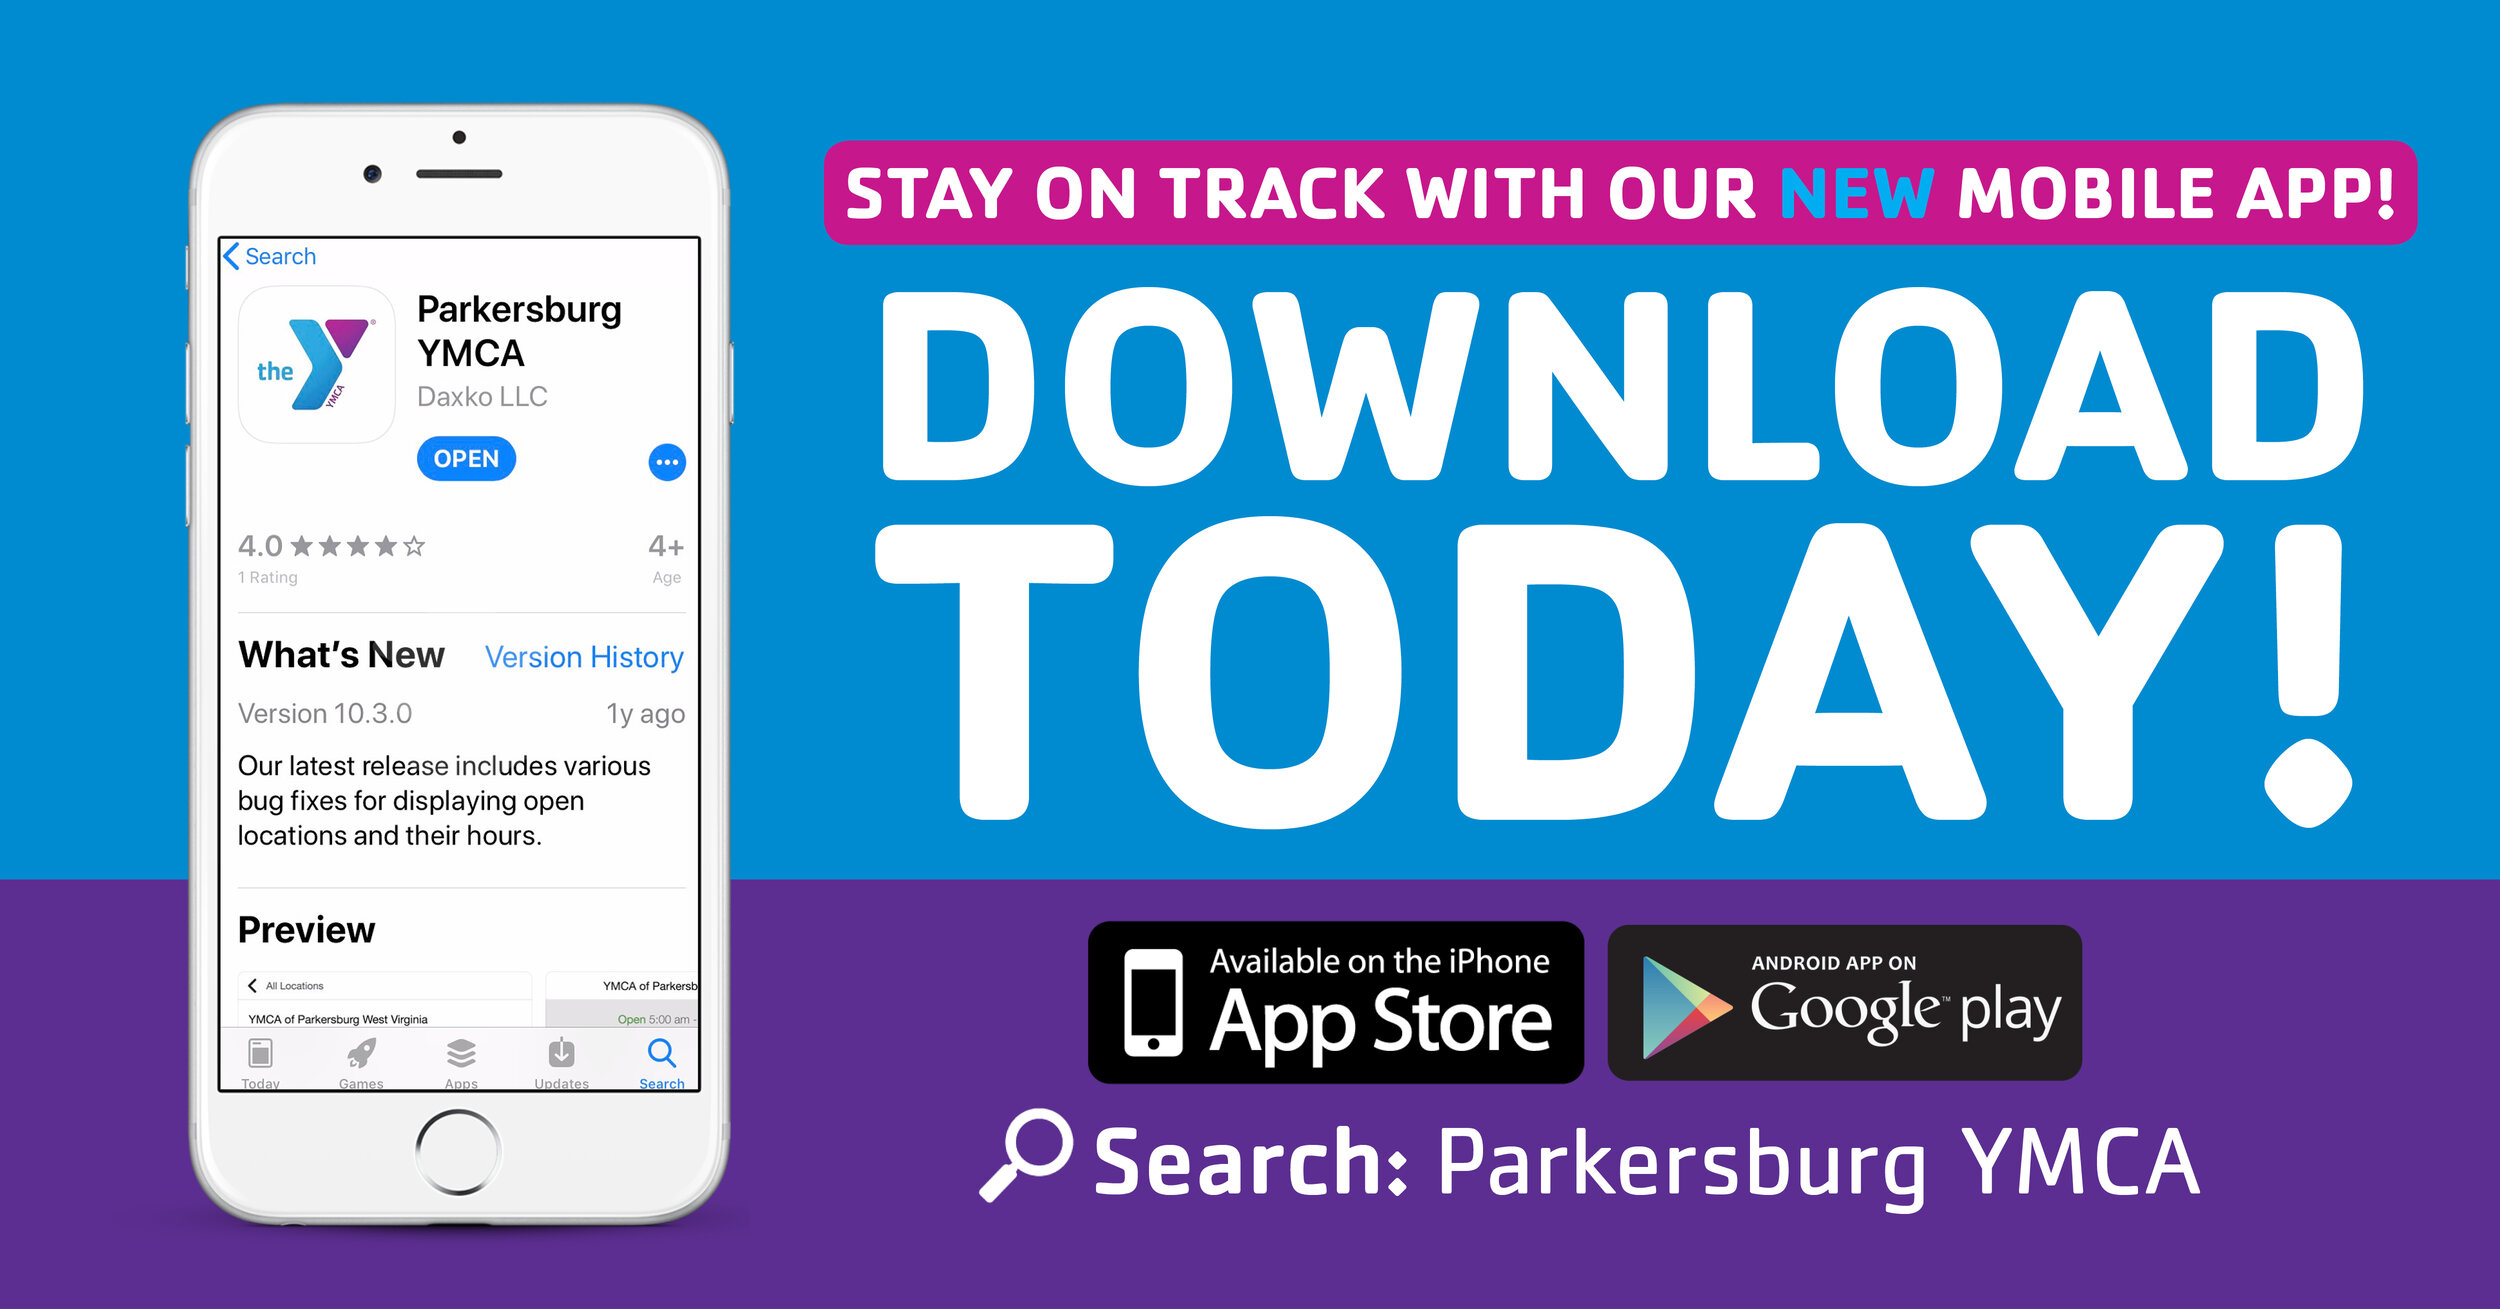 WE'RE MOBILELIKE YOU! - We're excited to announce our new mobile app, which brings the YMCA of Parkersburg right to your fingertips! Stay connected and access important information when you want it, where you want it – even on the go!DOWNLOAD ON iOSDOWNLOAD ON GOOGLE PLAY